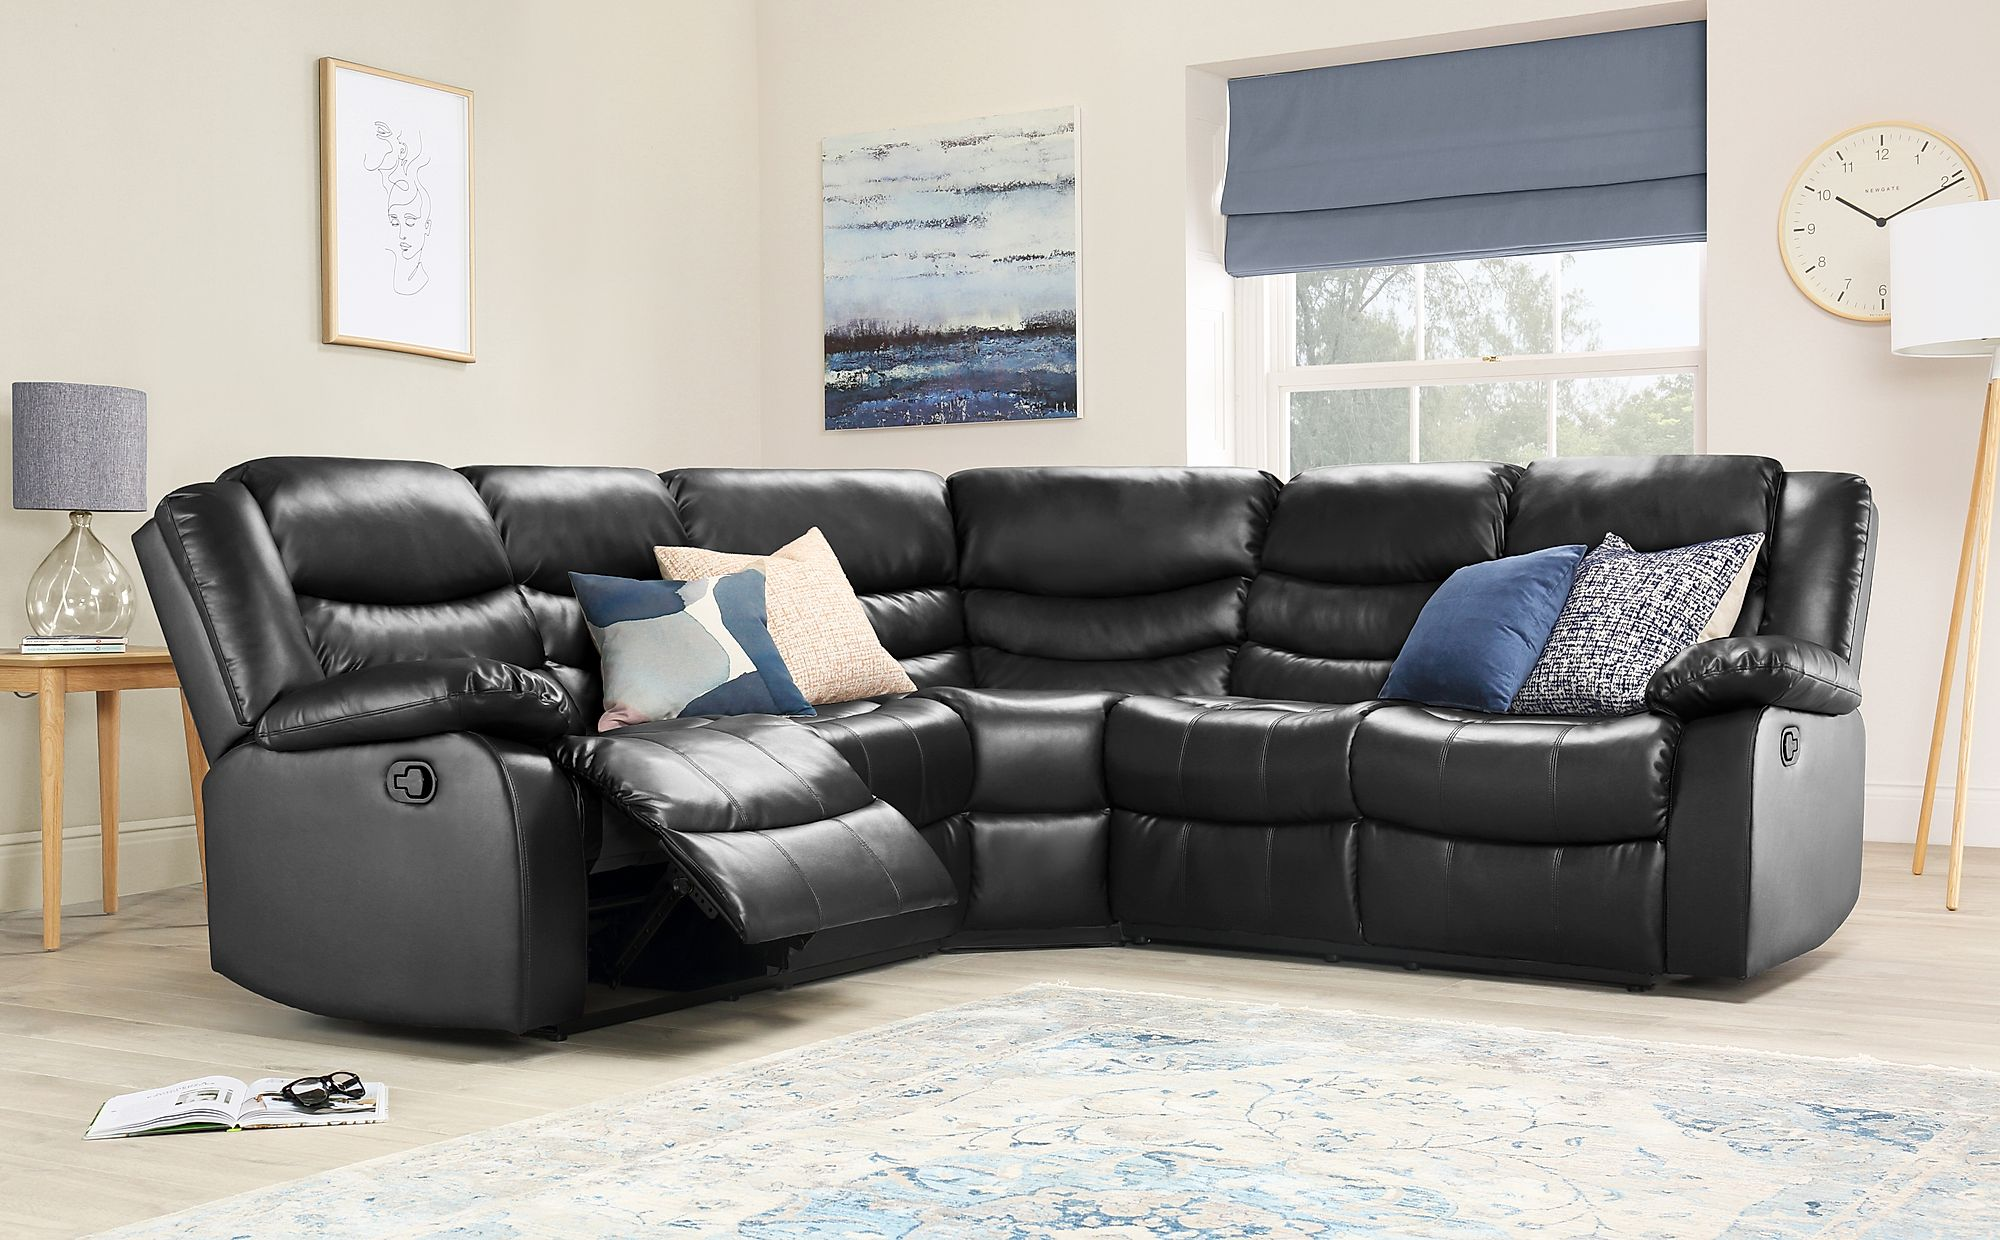 Awesome Sorrento Black Leather Recliner Corner Sofa Download Free Architecture Designs Sospemadebymaigaardcom